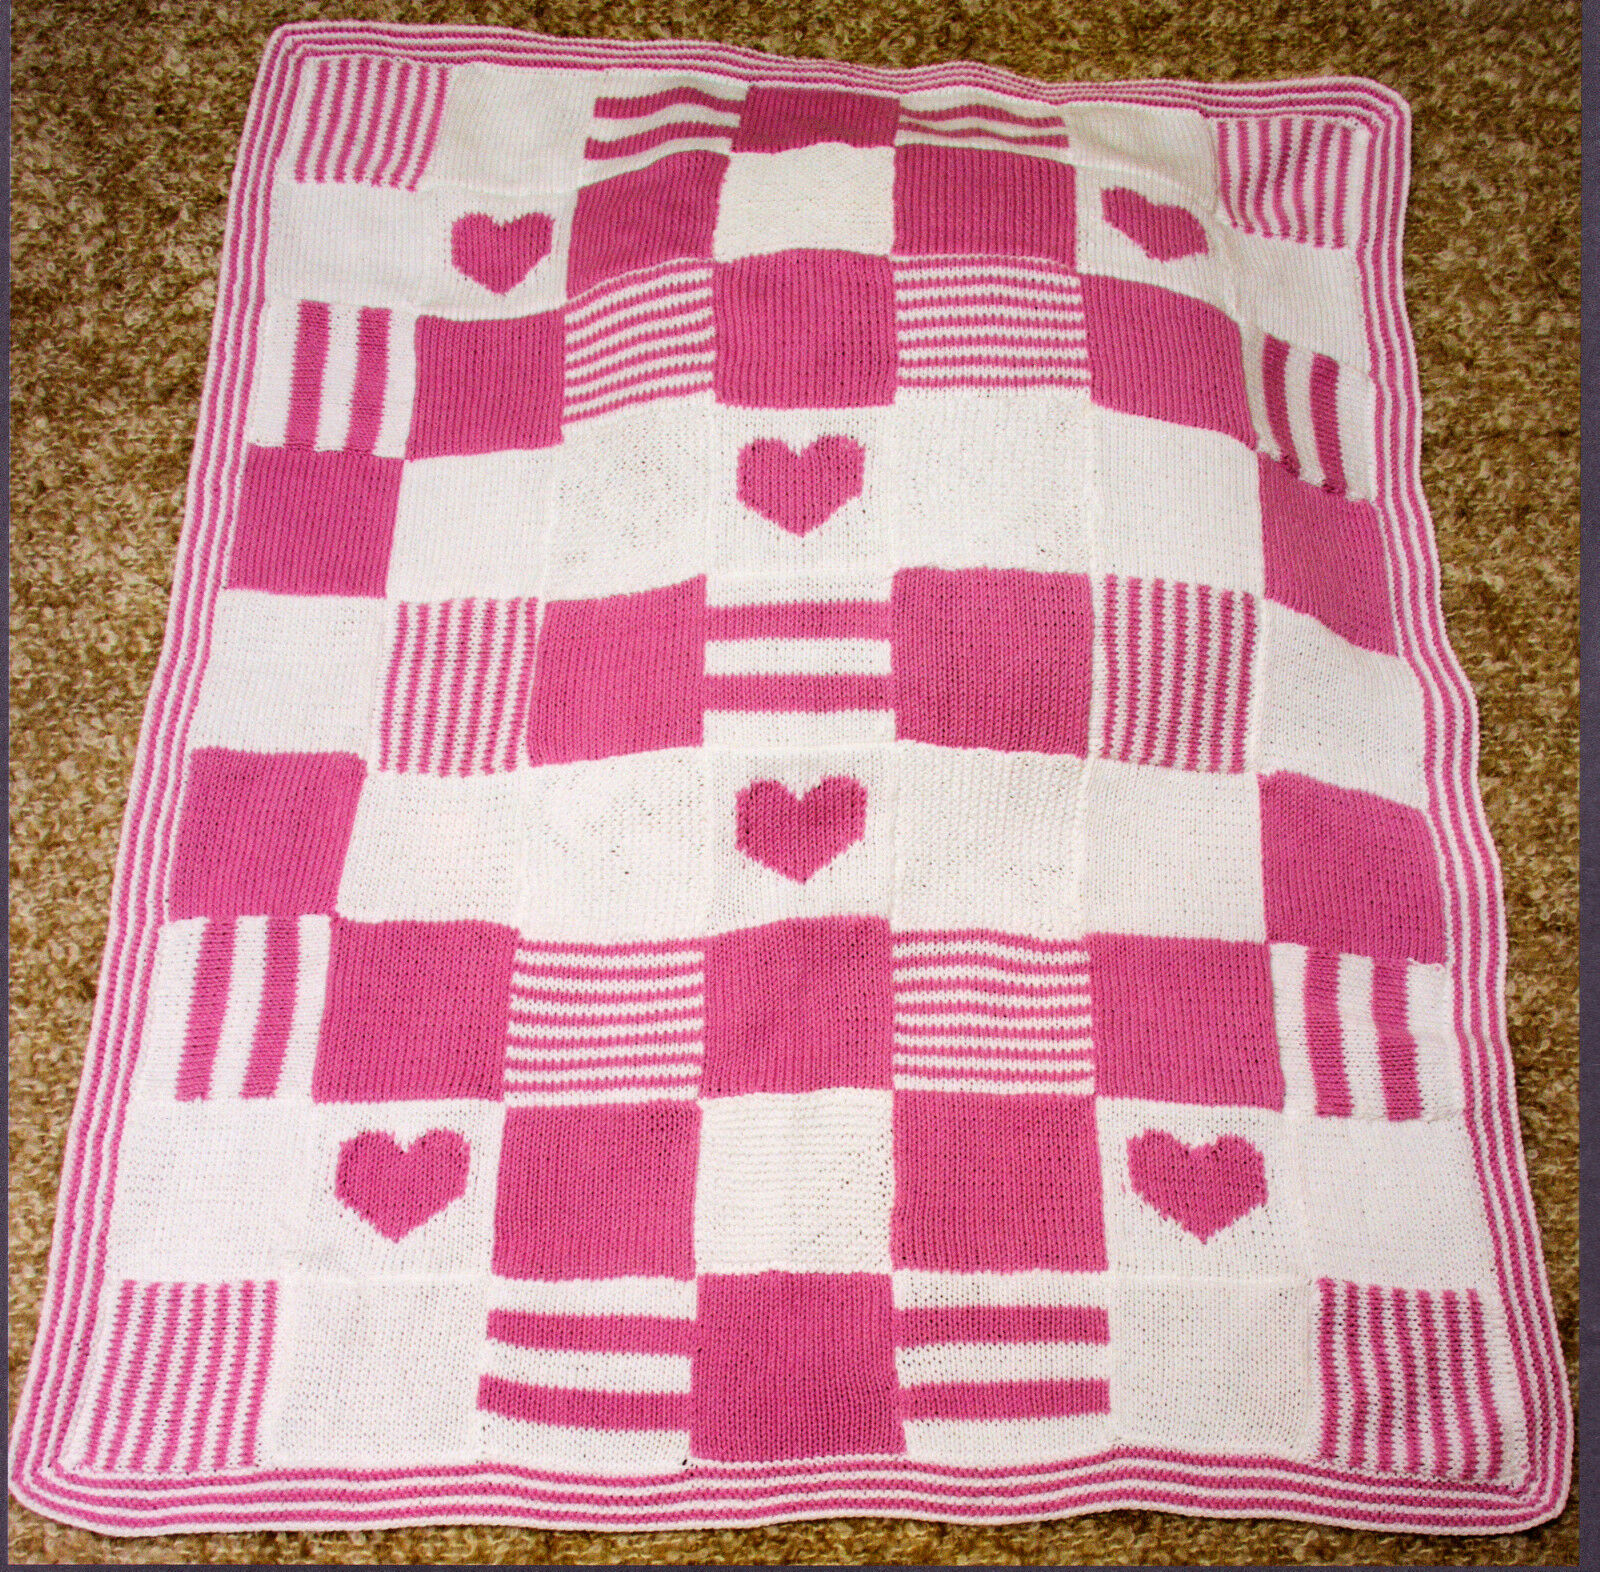 Knitting Patterns Blankets Patchwork : Patchwork Heart Baby Blanket Knit in Squares 32